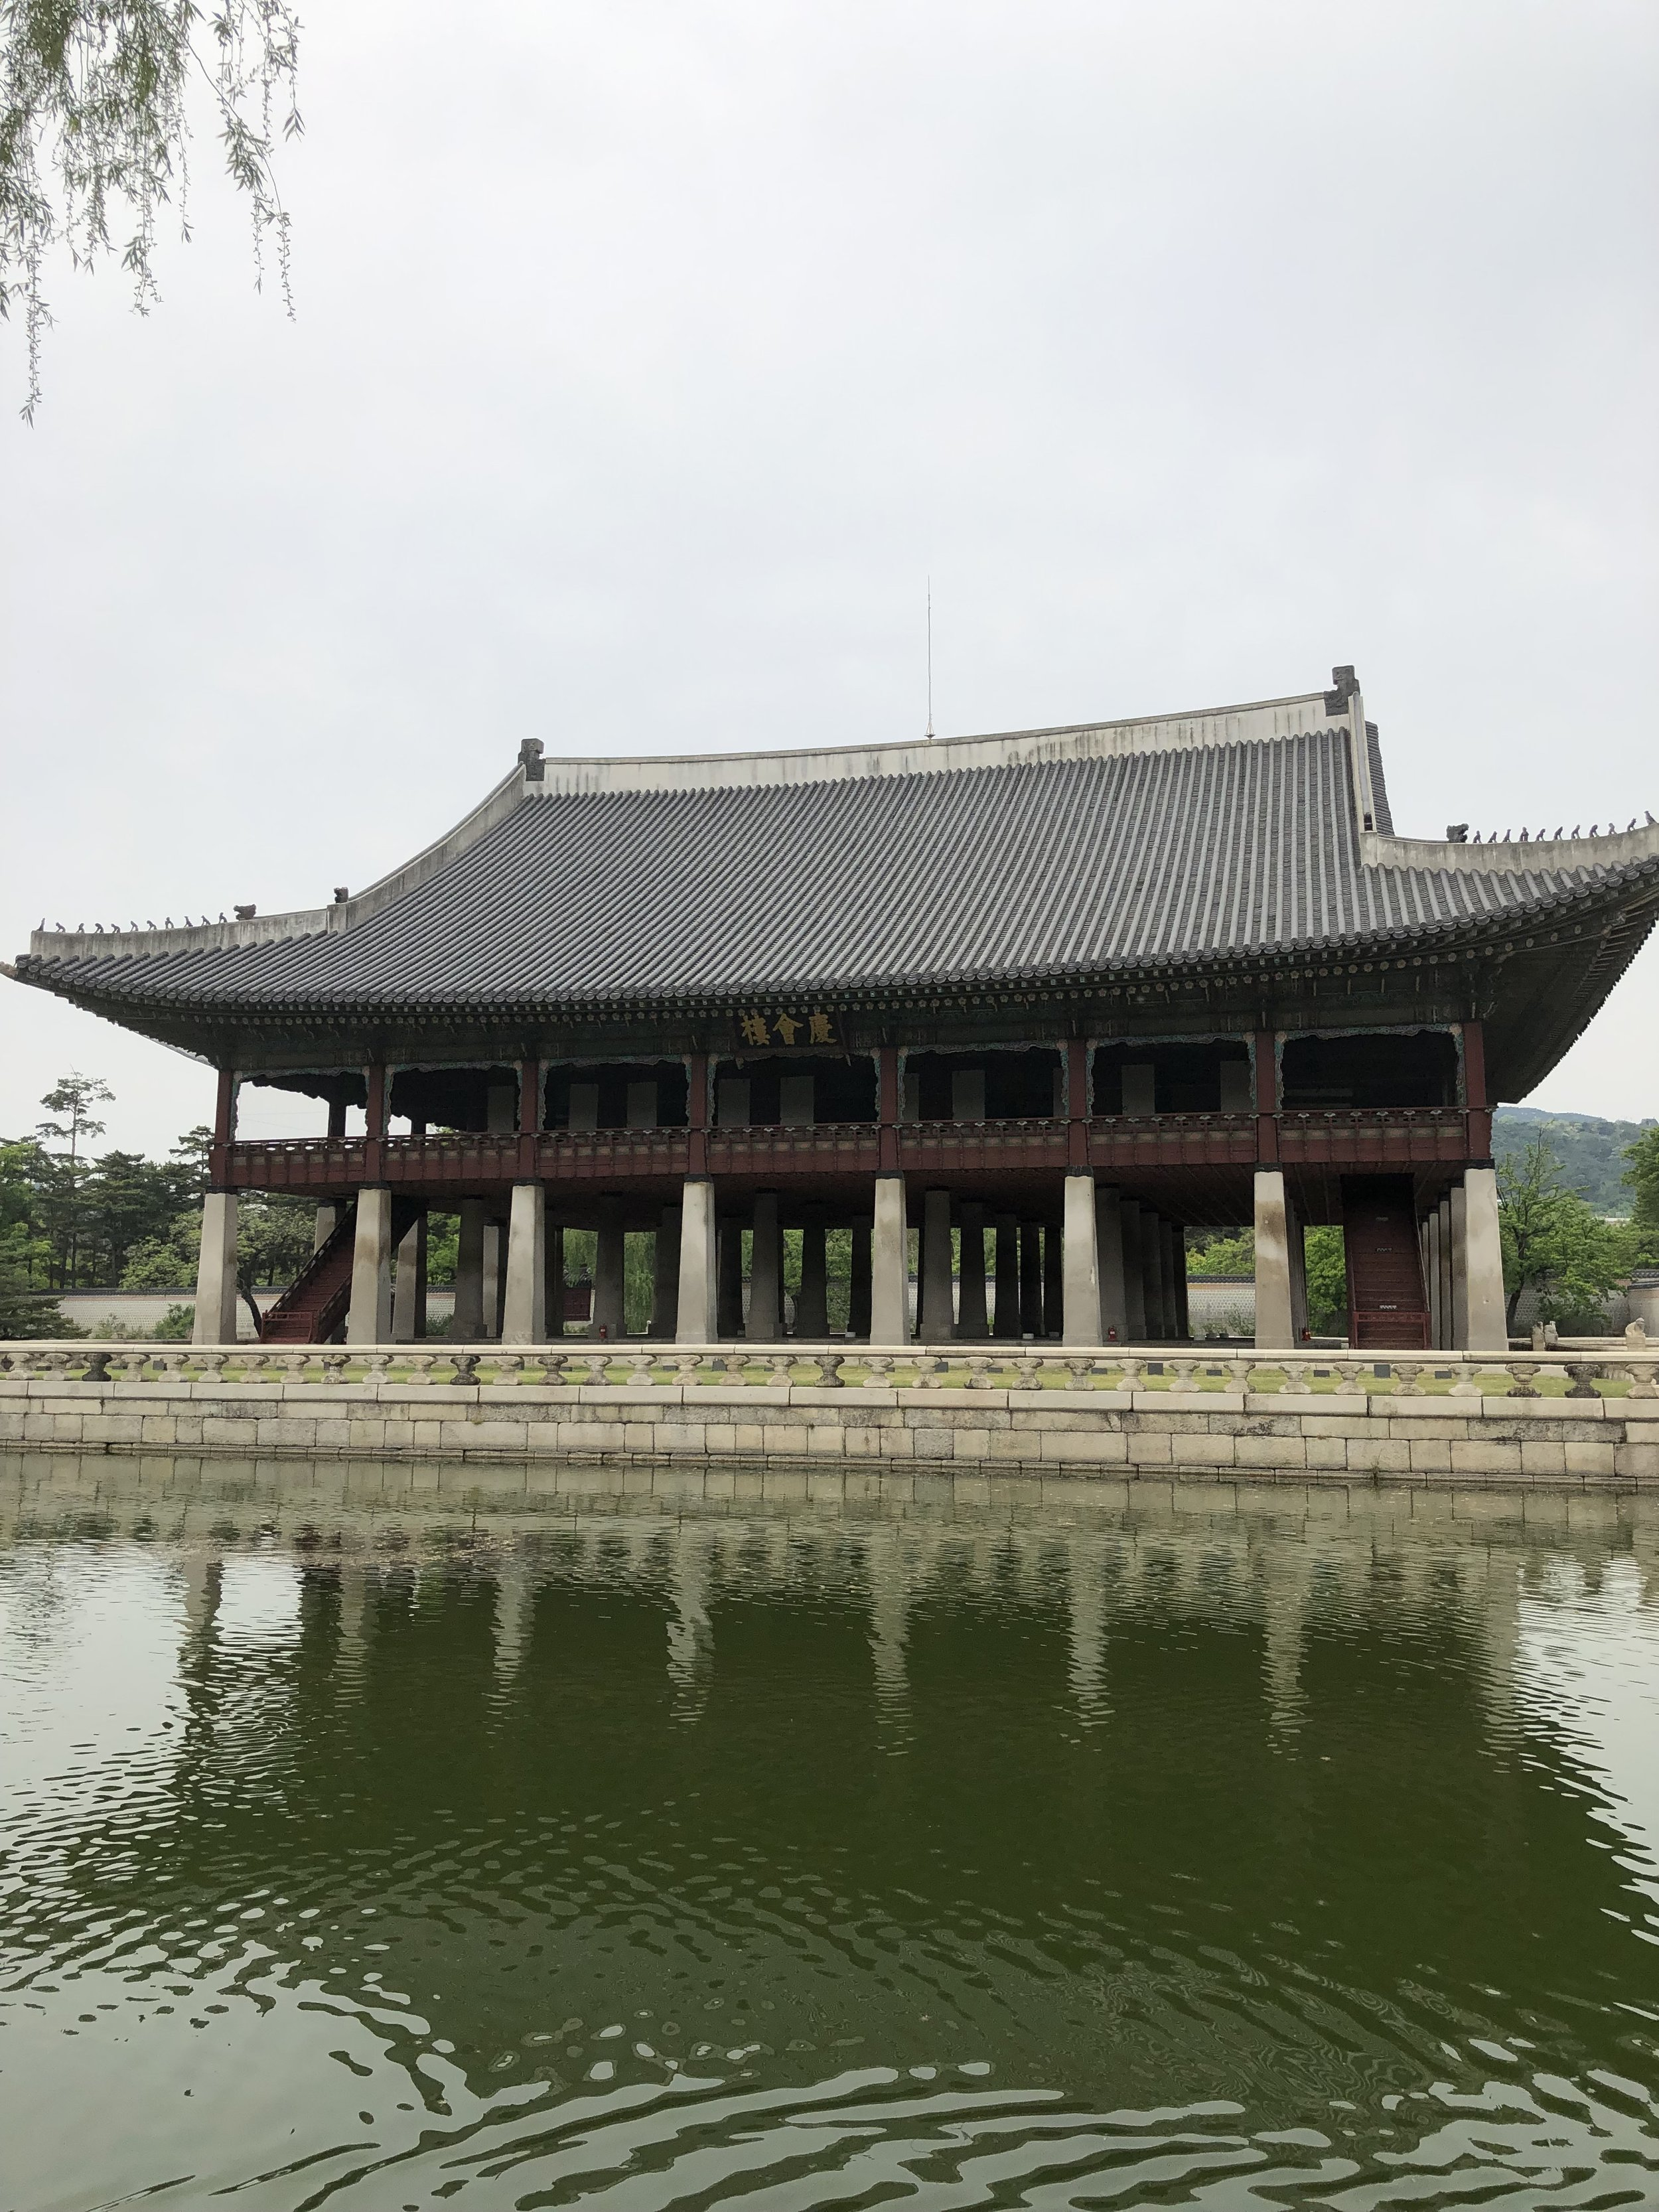 Where the parties were held - Gyeongbokgung Palace (Seoul)